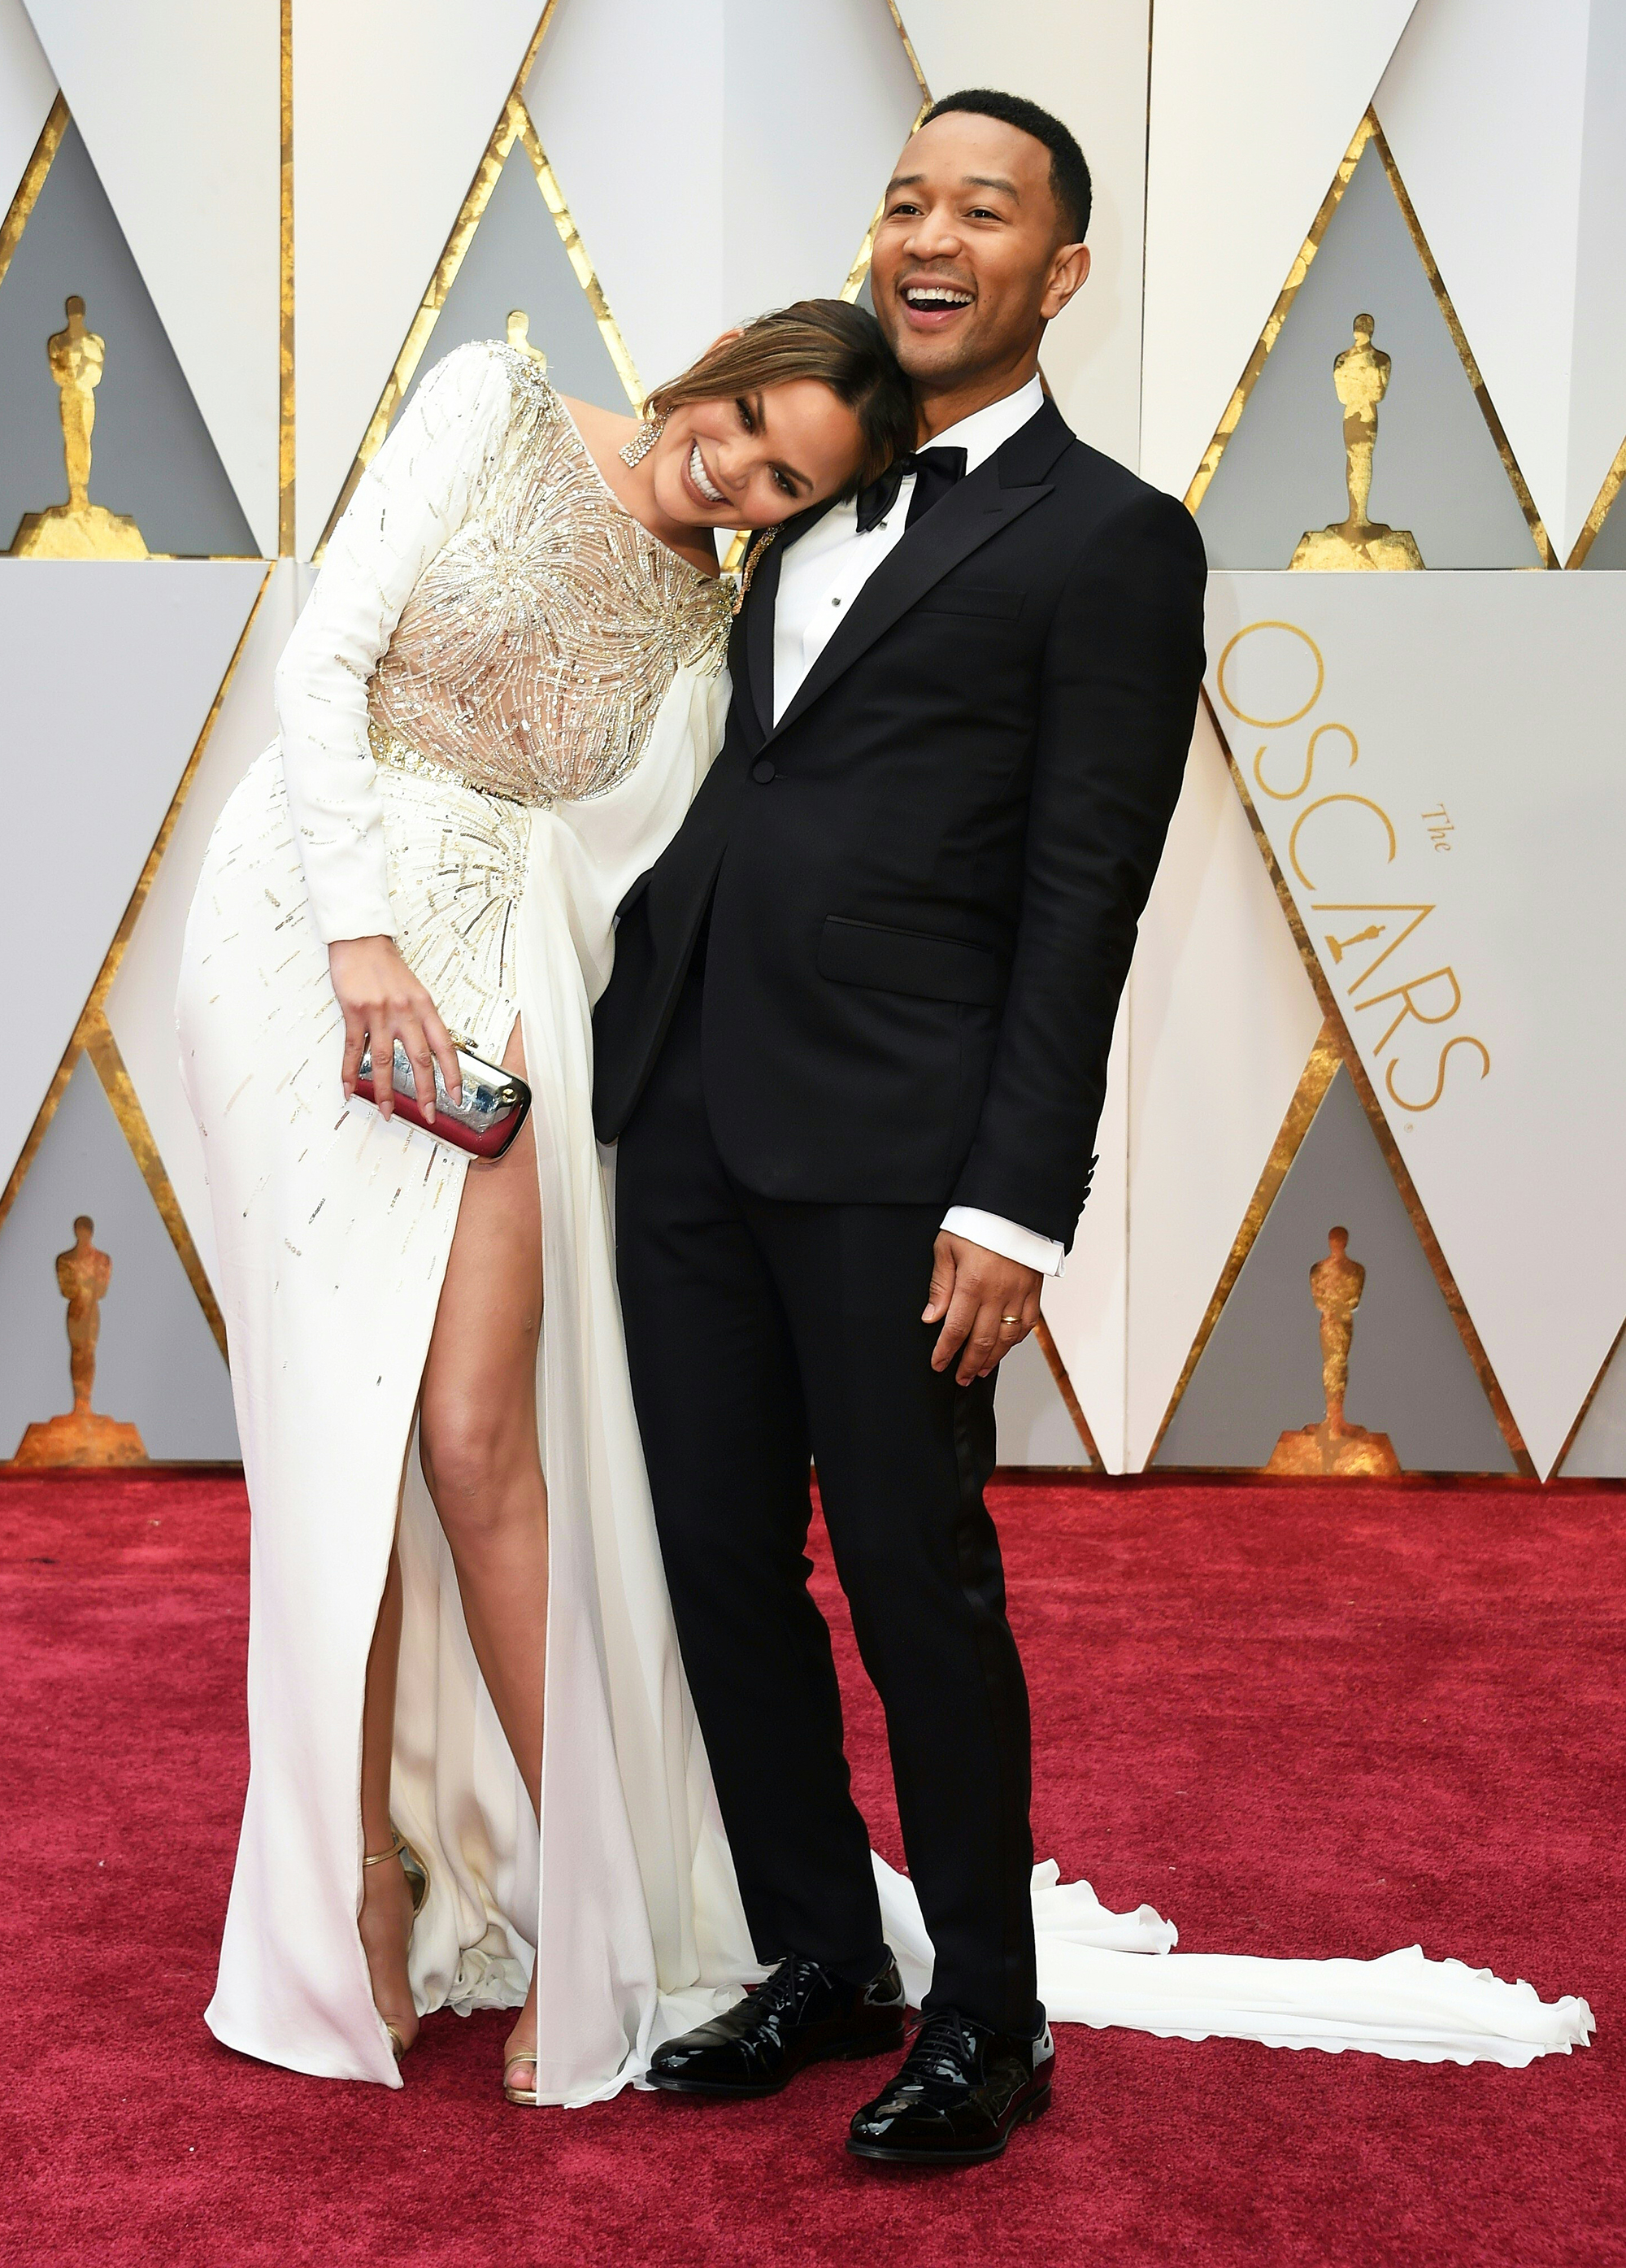 John Legend and Chrissy Teigen on the red carpet for the 89th Oscars, on Feb. 26, 2017 in Hollywood, Calif.